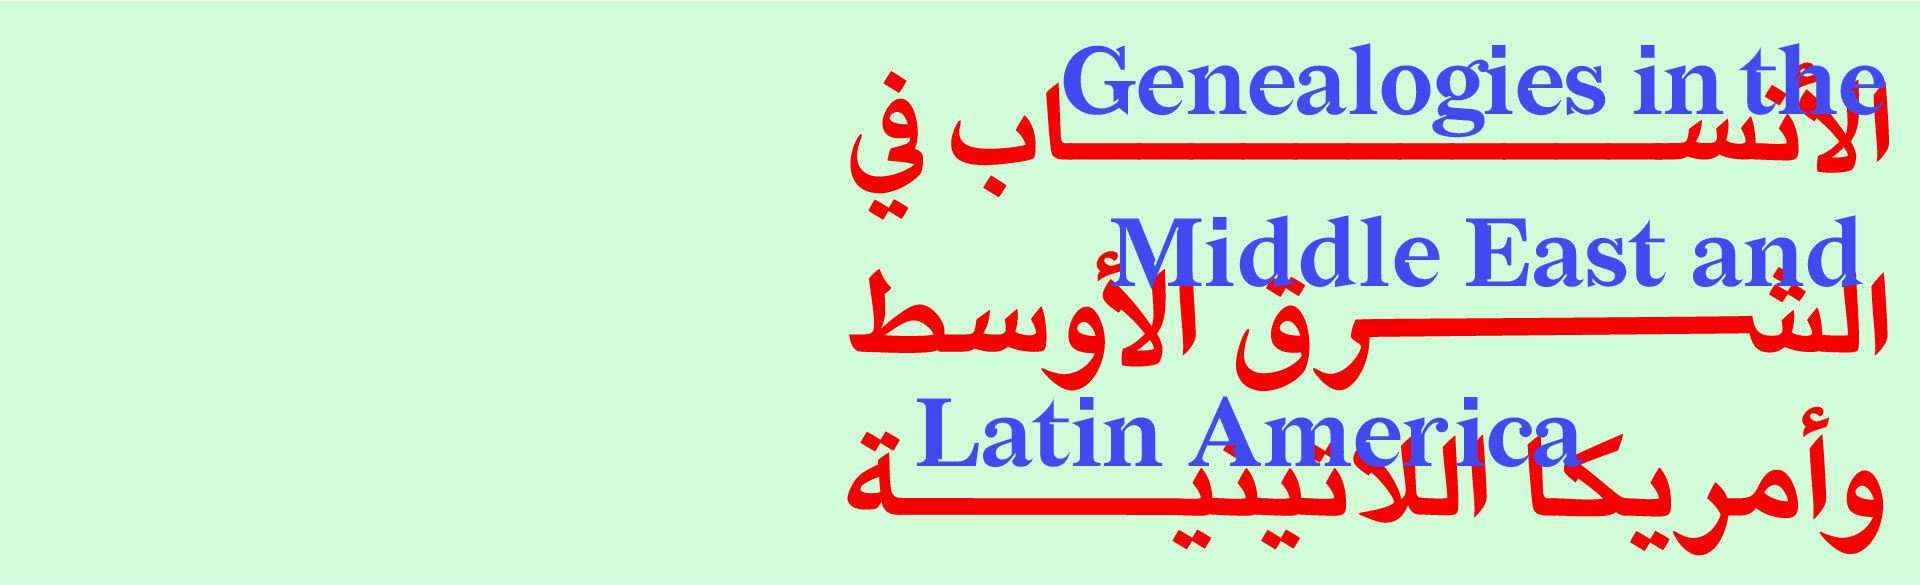 Genealogies in the Middle East and Latin America